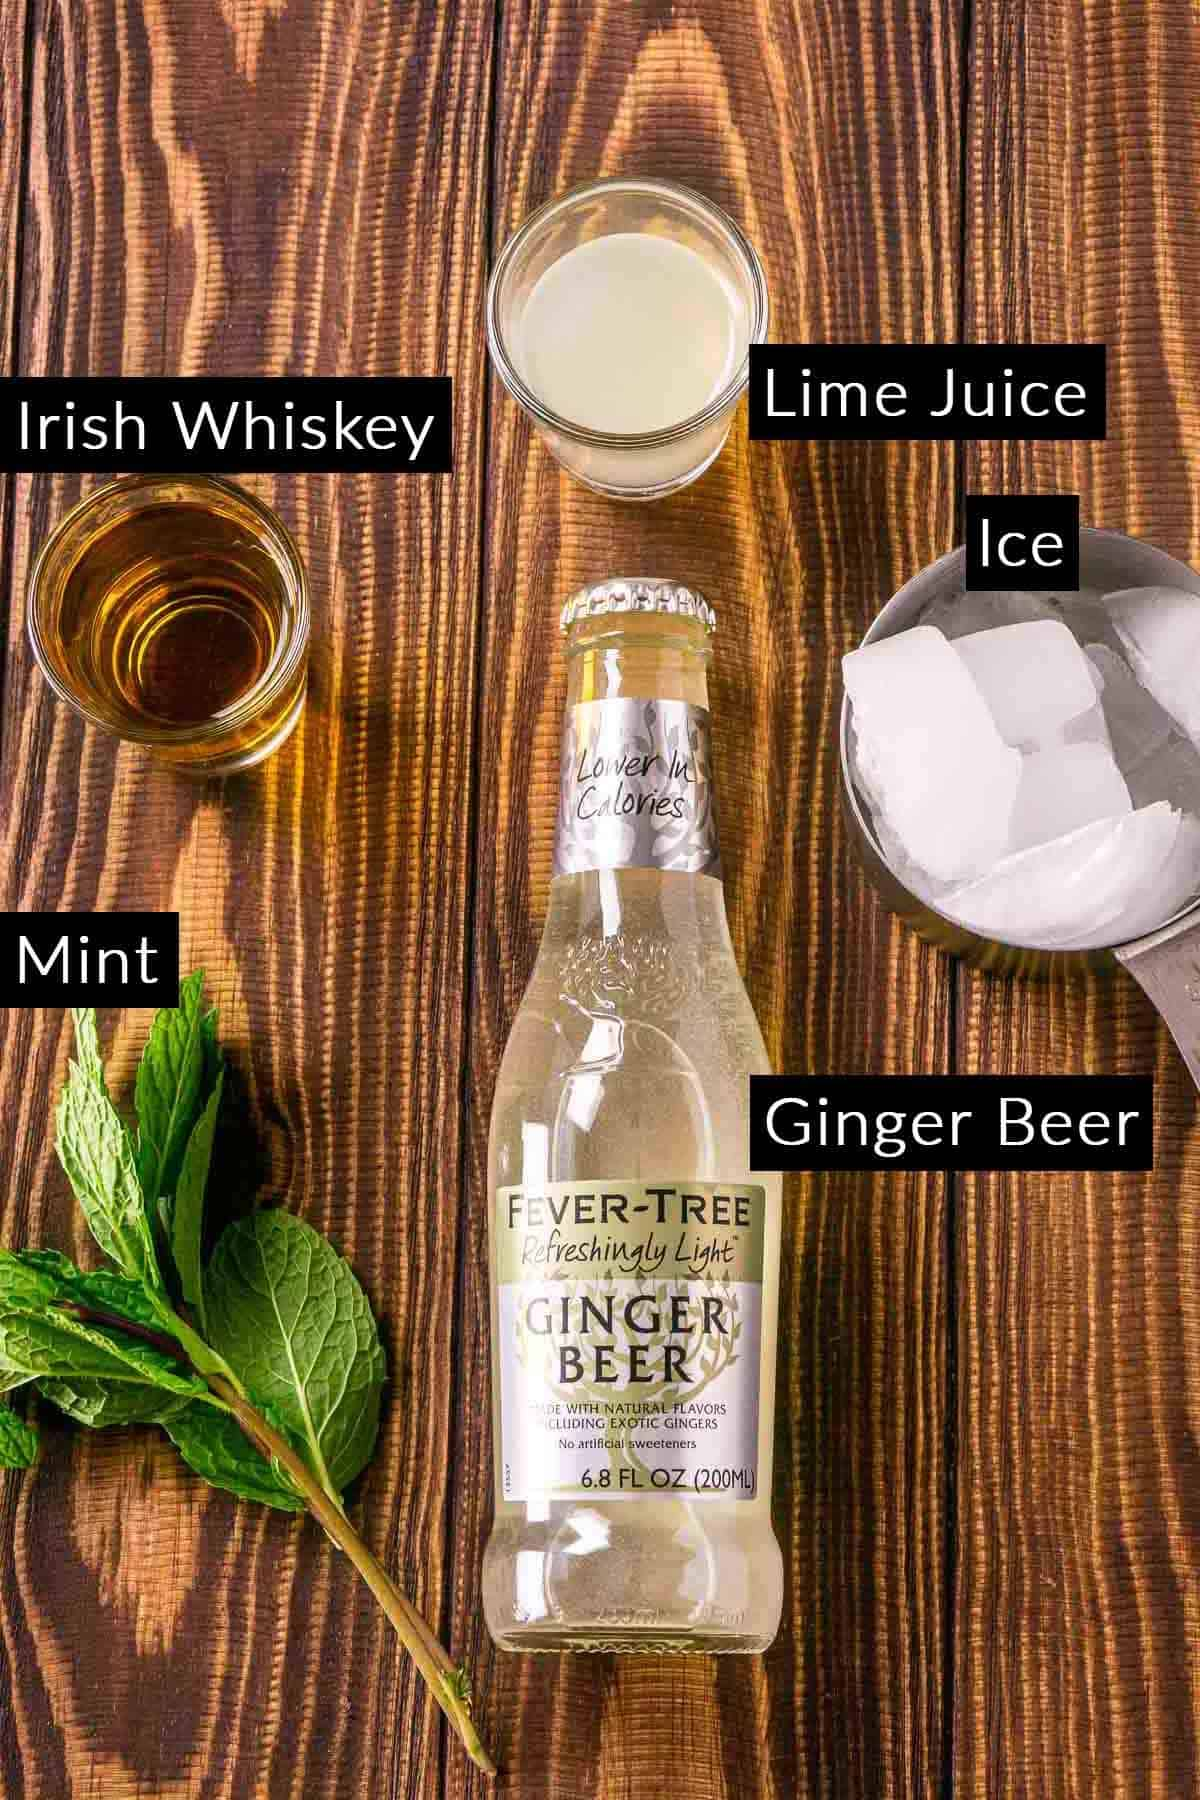 The Irish mule ingredients on a wooden board with black and white labels.